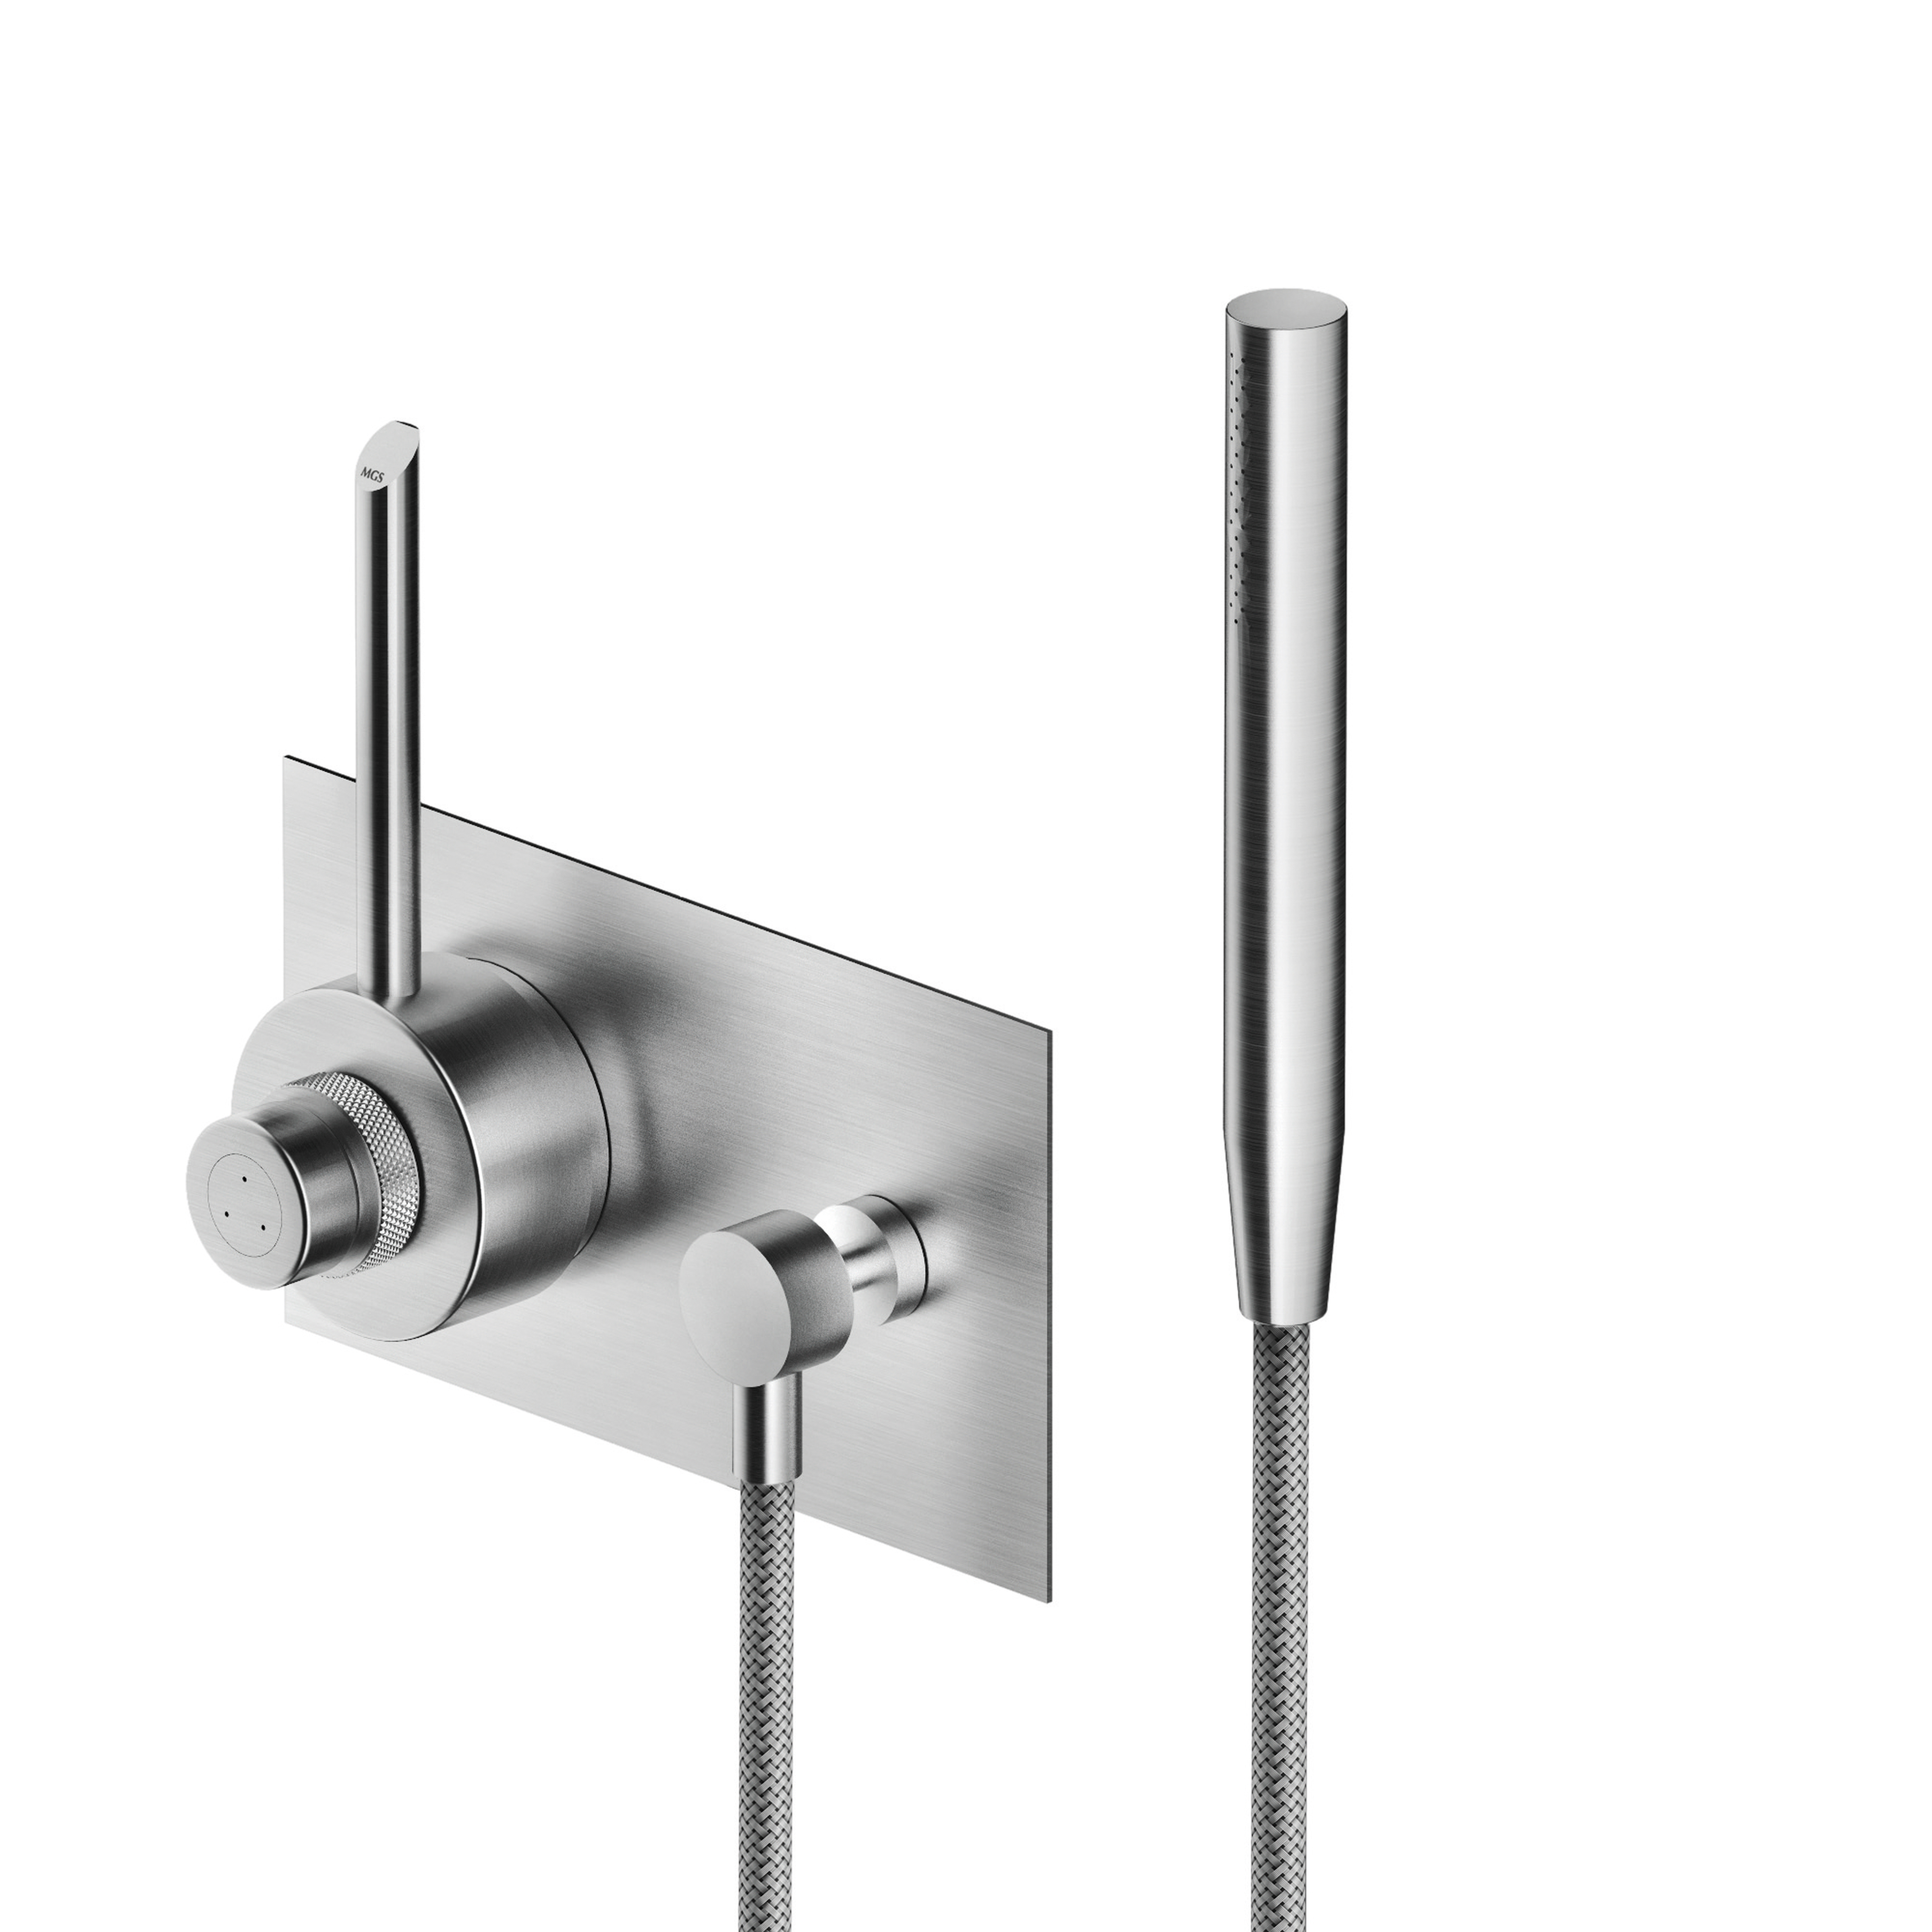 MGS CB407 Thermostatic Shower Mixer with Hand Shower - matte stainless